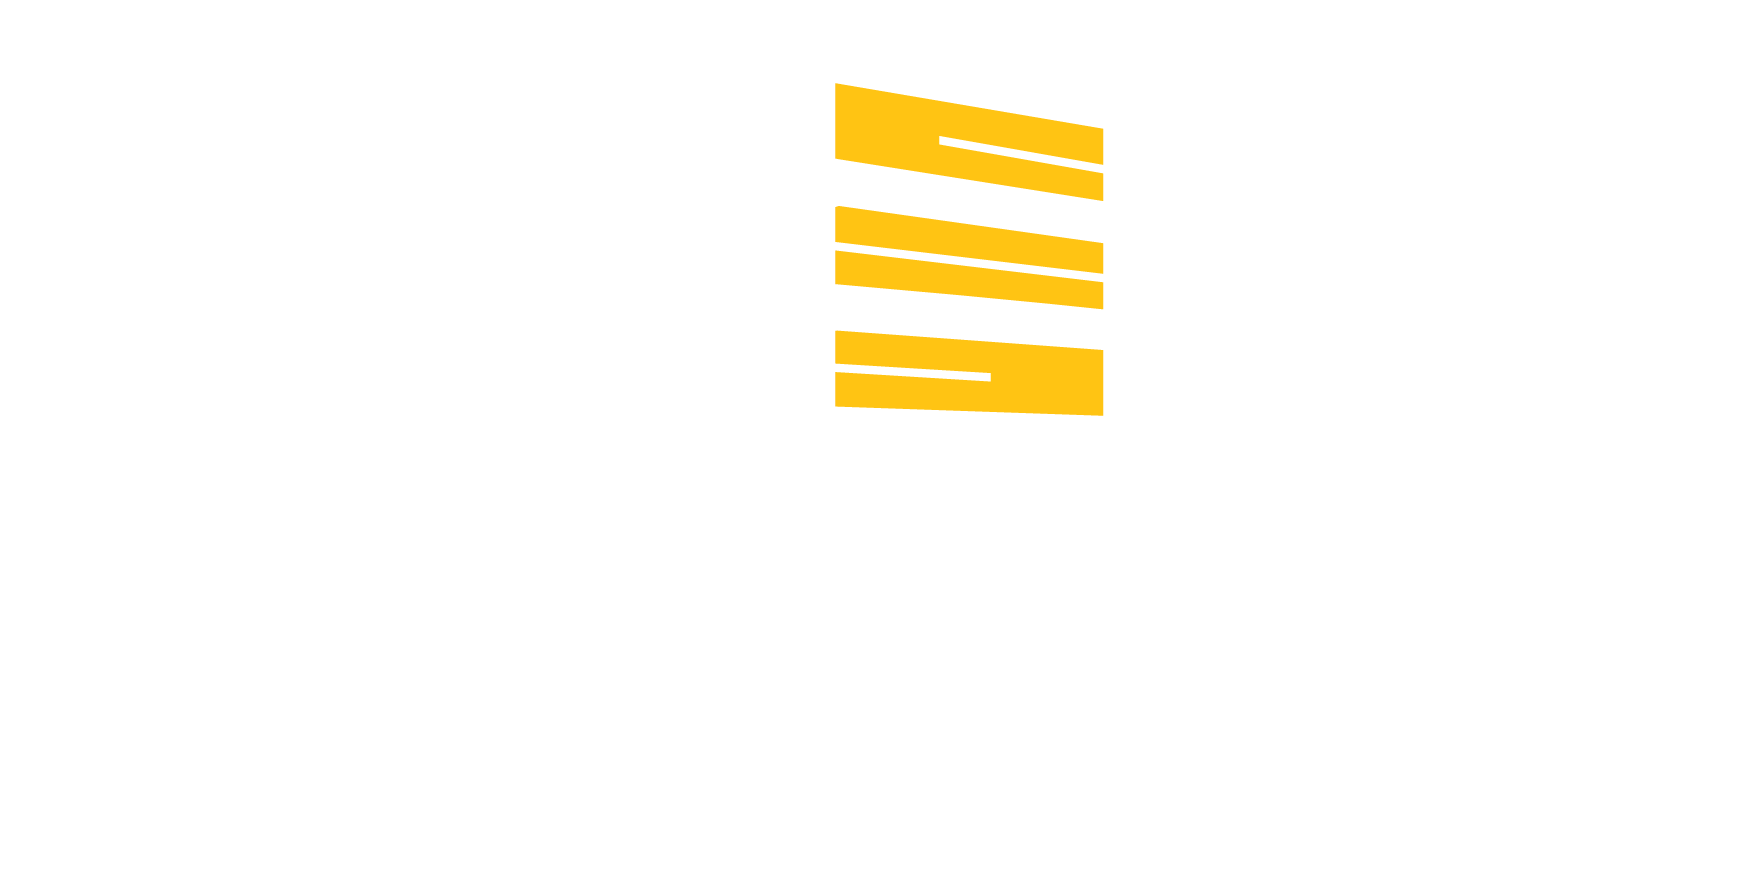 Sky Point Structures